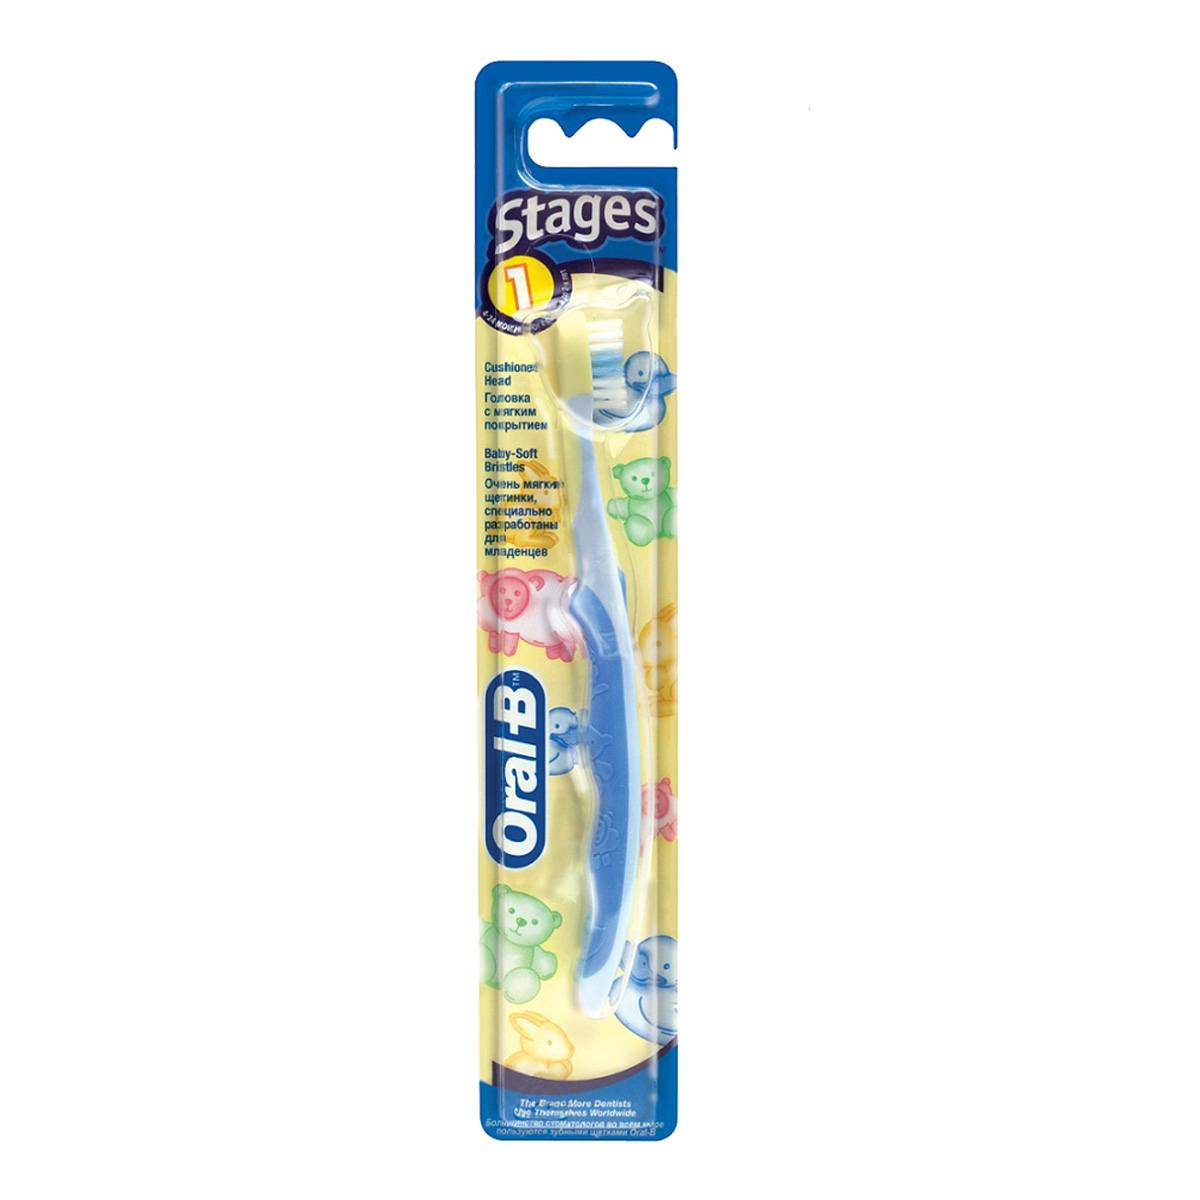 3014260278311_Oral-B-ocuk-Stages-1-4-24-Ay-Di-Fras